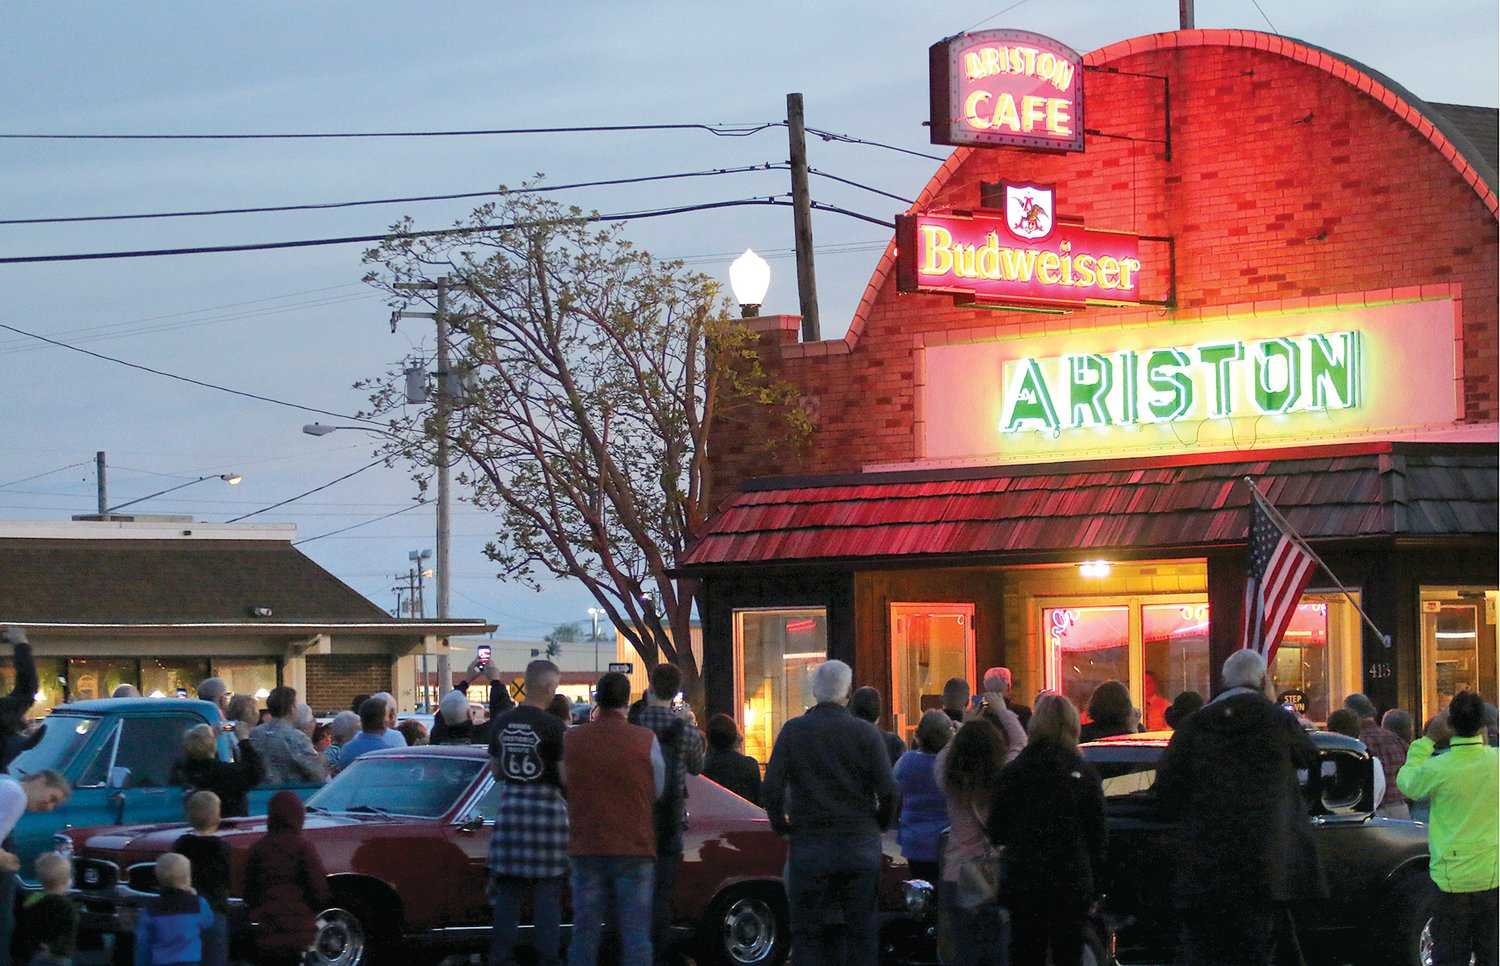 Local community members and Route 66 enthusiasts gathered at the historic Ariston Cafe in Litchfield on Saturday evening, May 4, to celebrate the relighting of the neon signs atop the restaurant, as well as accents in the front window. The work was completed by the Neon Preservation Committee of the Route 66 Association of Missouri.